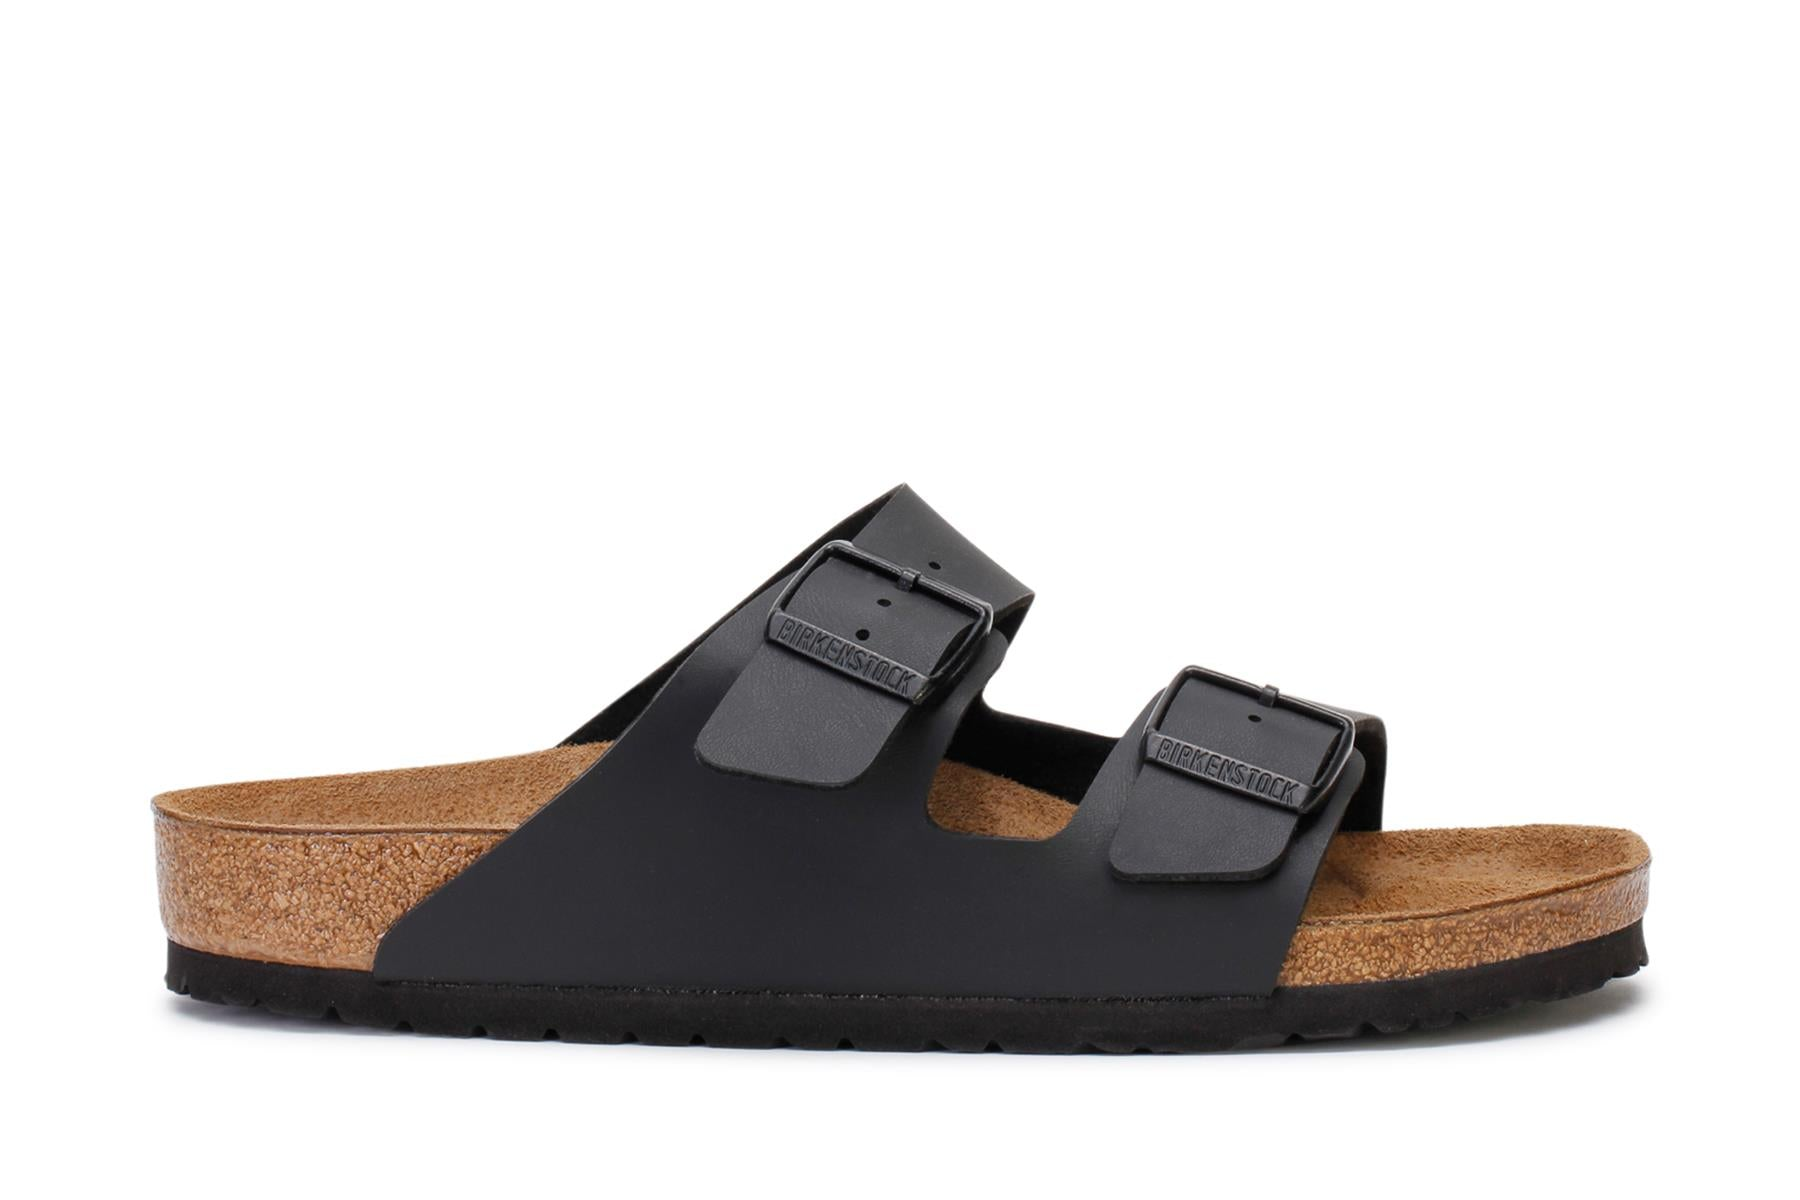 Birkenstock Men's Slide Sandals Arizona Black Birko-Flor 0051791